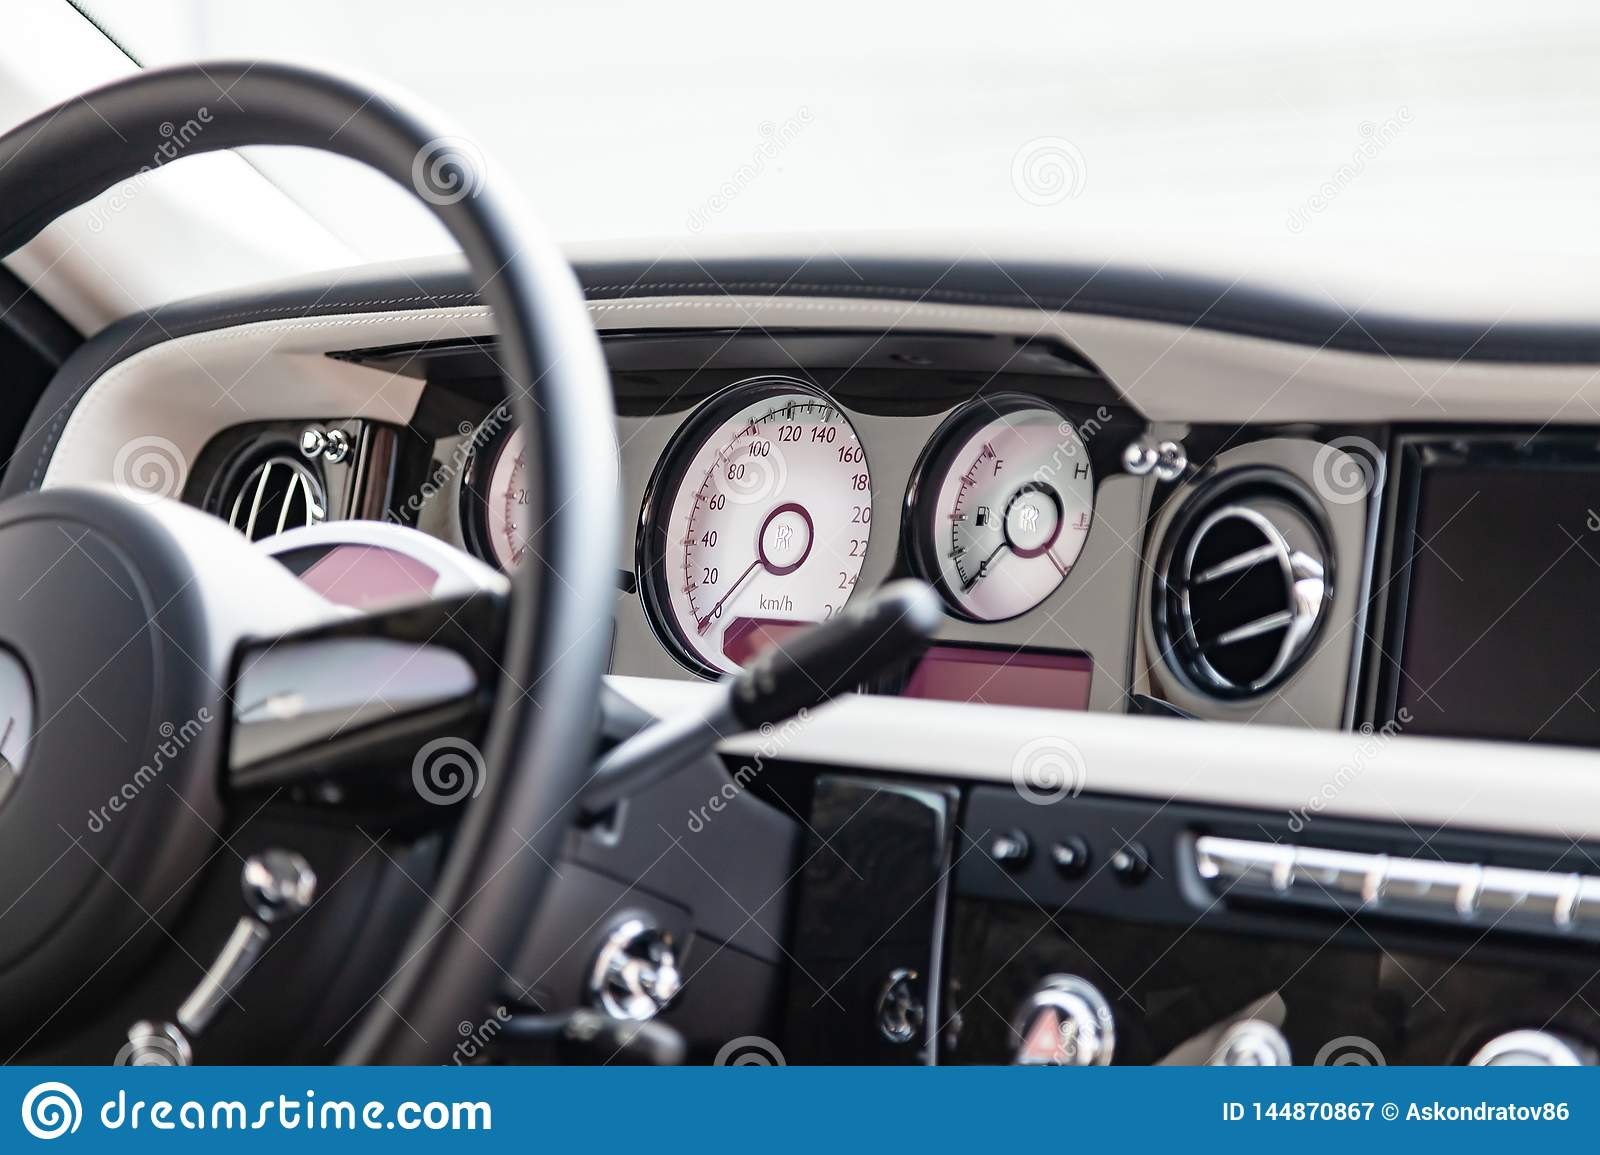 Interior View Of New A Very Expensive Rolls Royce Phantom Car A Long Black Limousine With Dashboard Steering Wheel Seats On Editorial Photography Image Of Leather Automobile 144870867